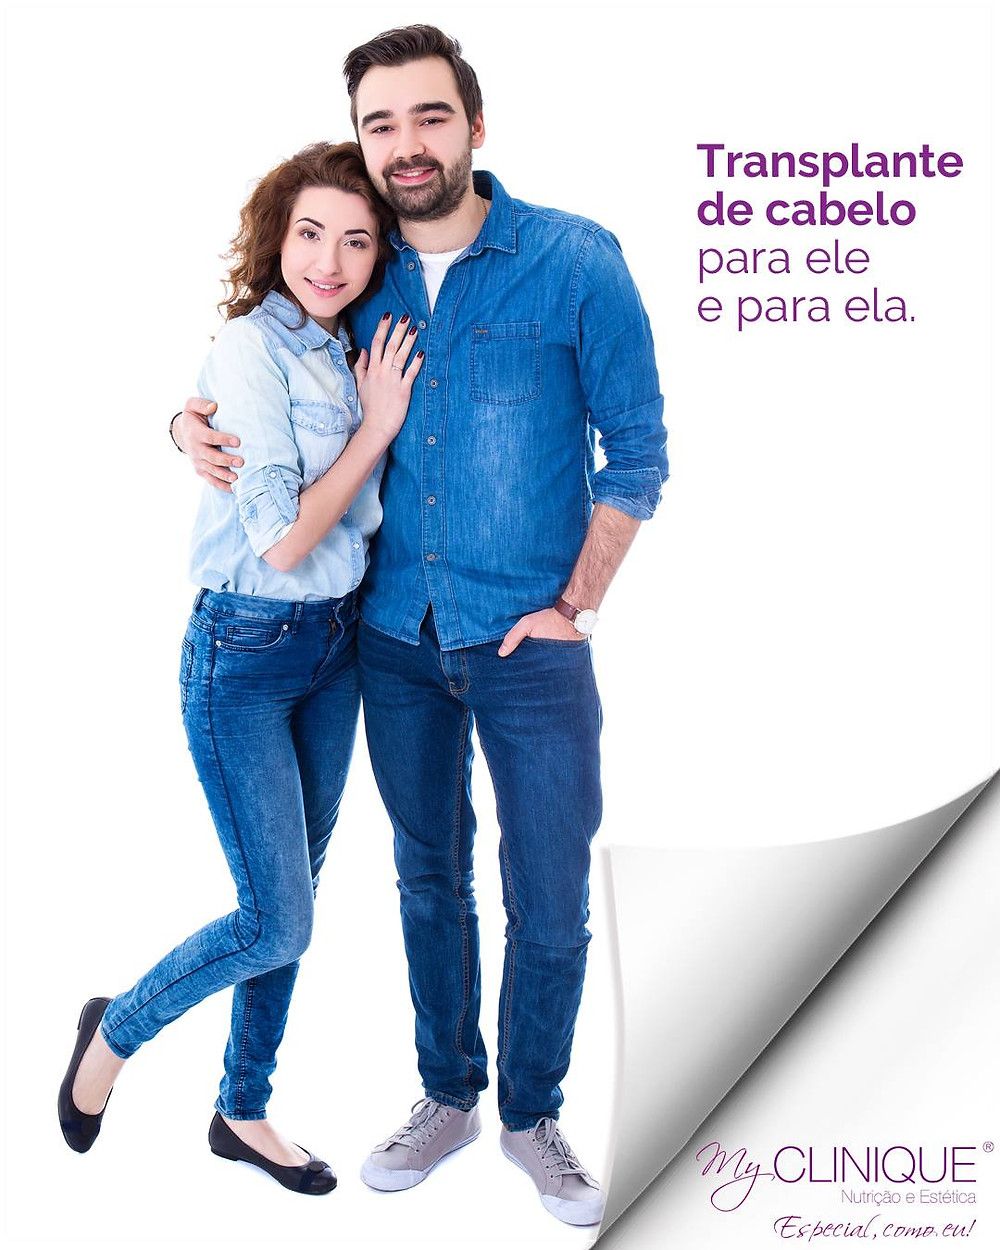 myclinique transplante capilar